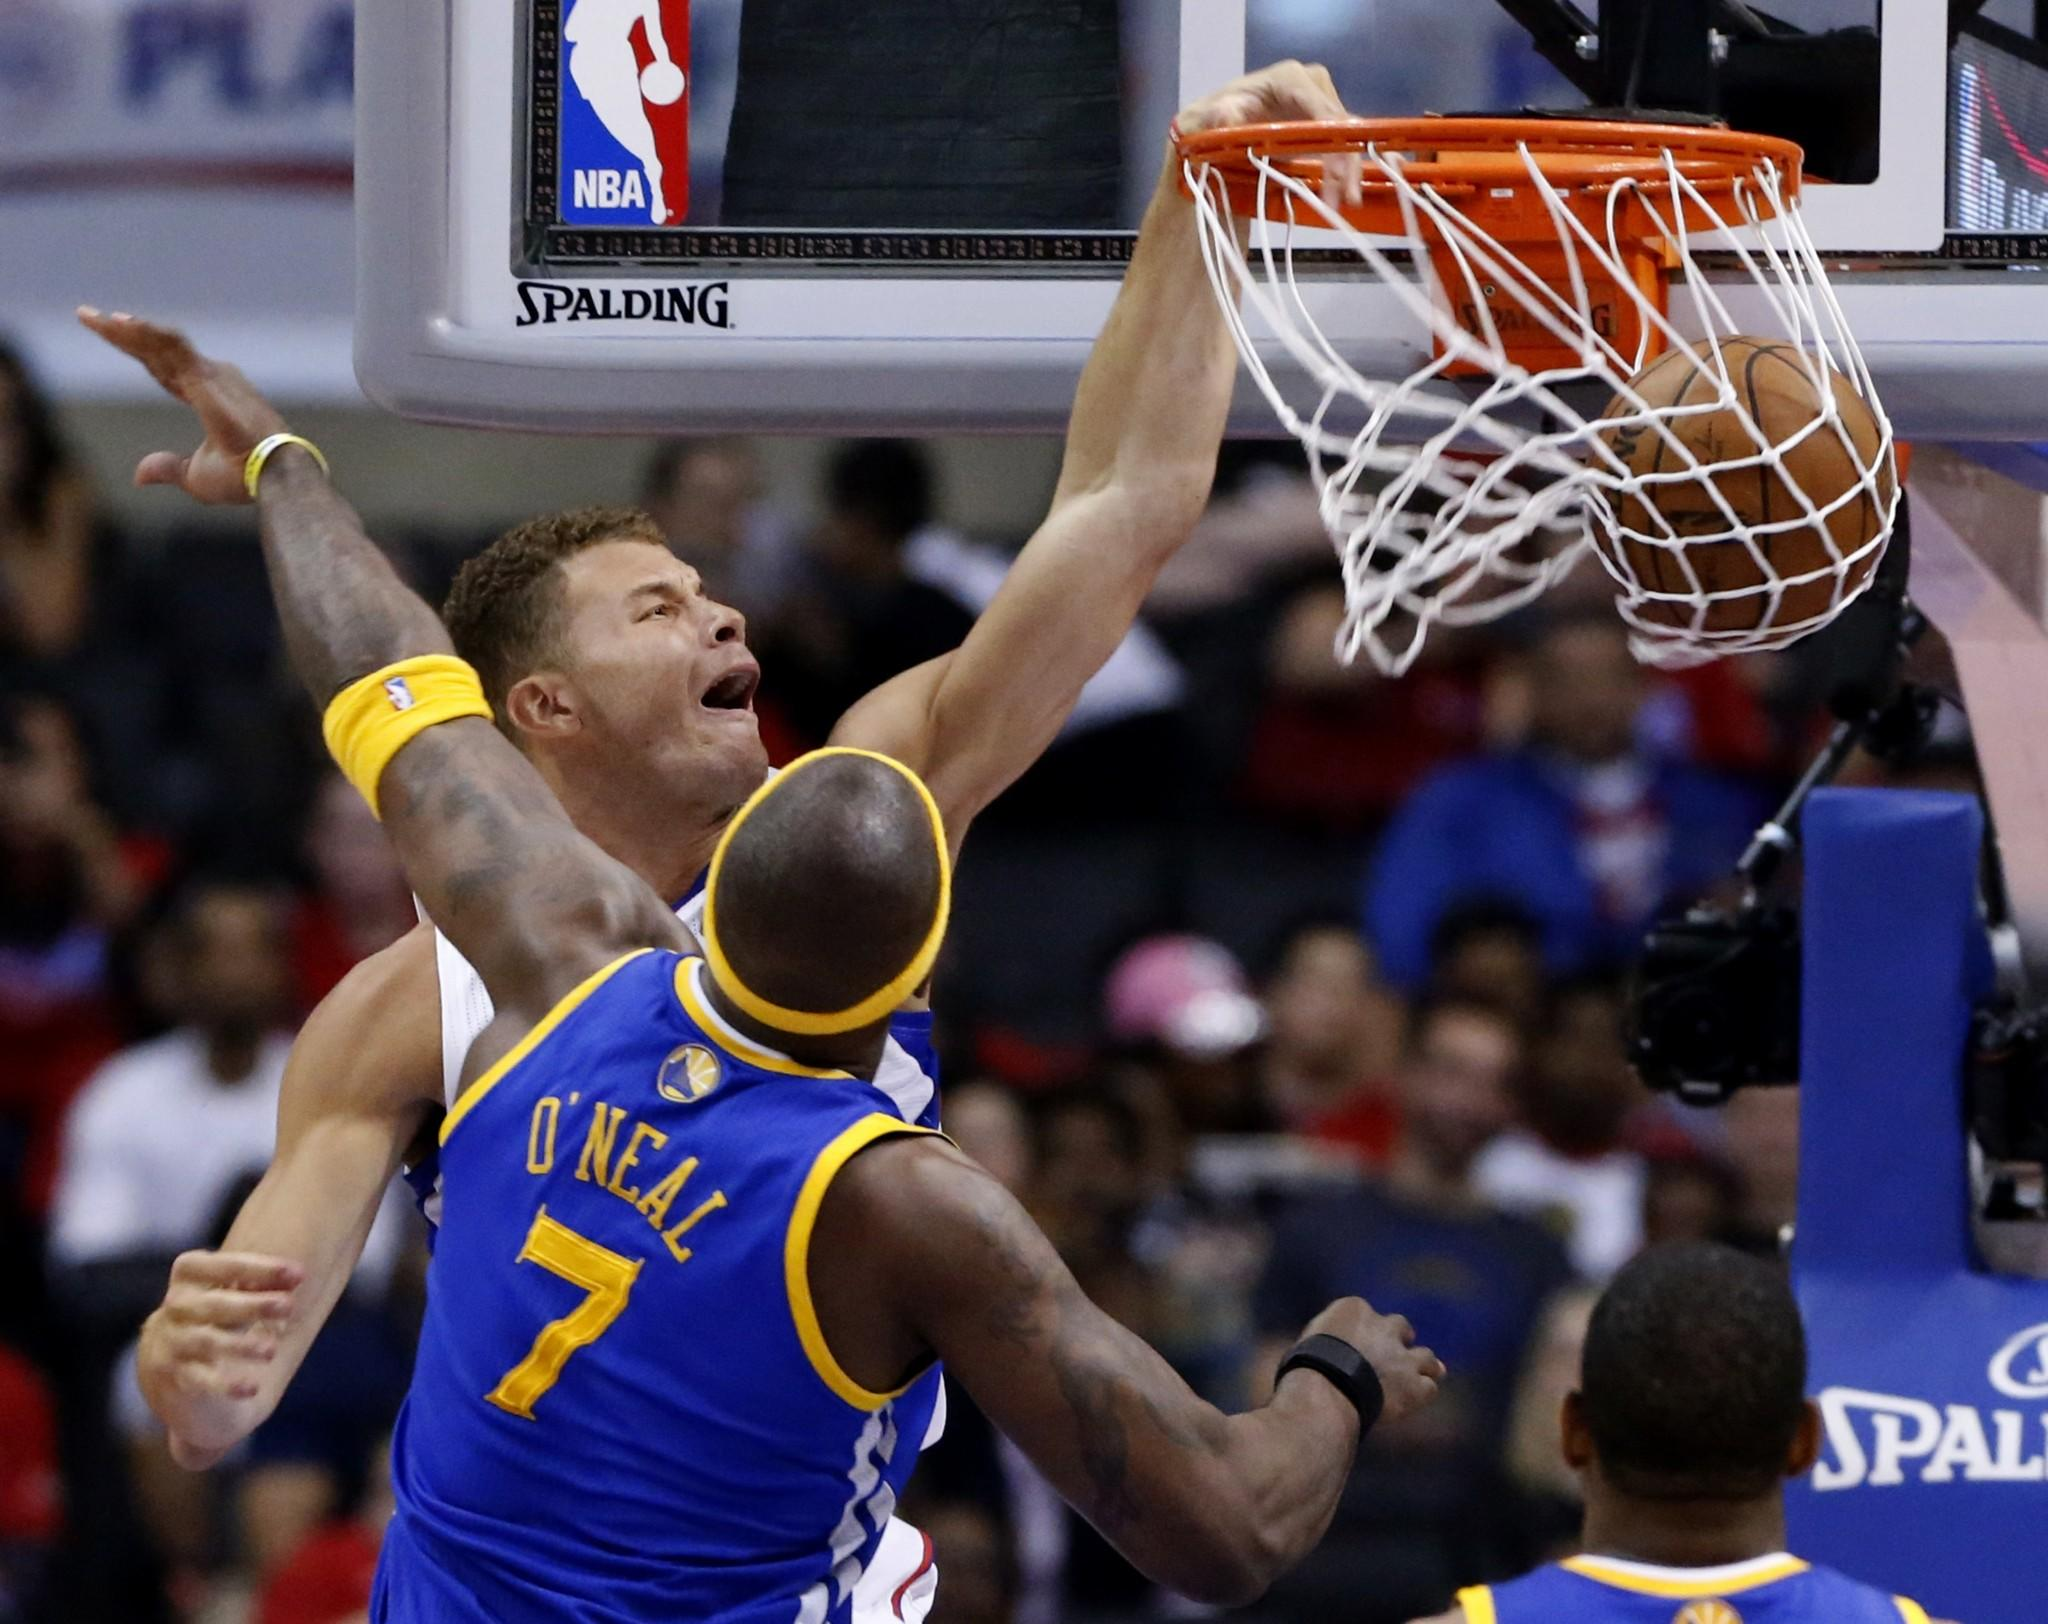 Clippers power forward Blake Griffin slams the ball past Warriors center Jermaine O'Neal in the second half Saturday afternoon during Game 1 at Staples Center.